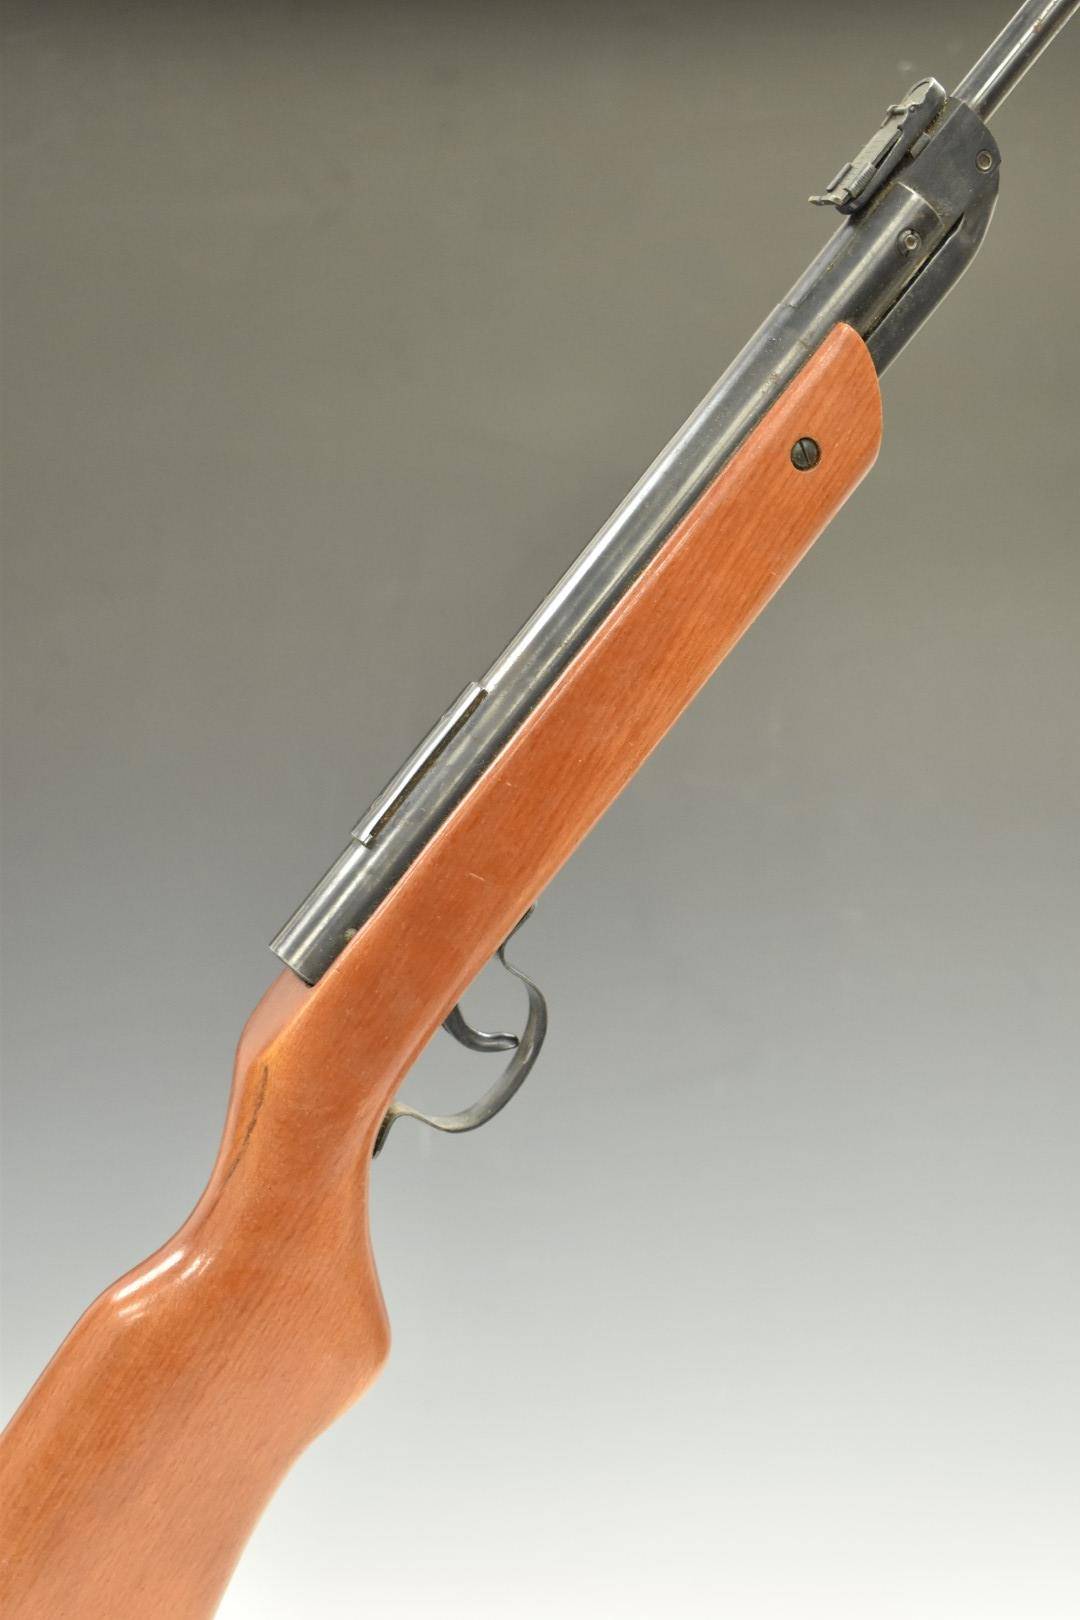 Milbro G23 .177 air rifle with adjustable sights, scope rail and BSA 4x20 scope, NVSN.